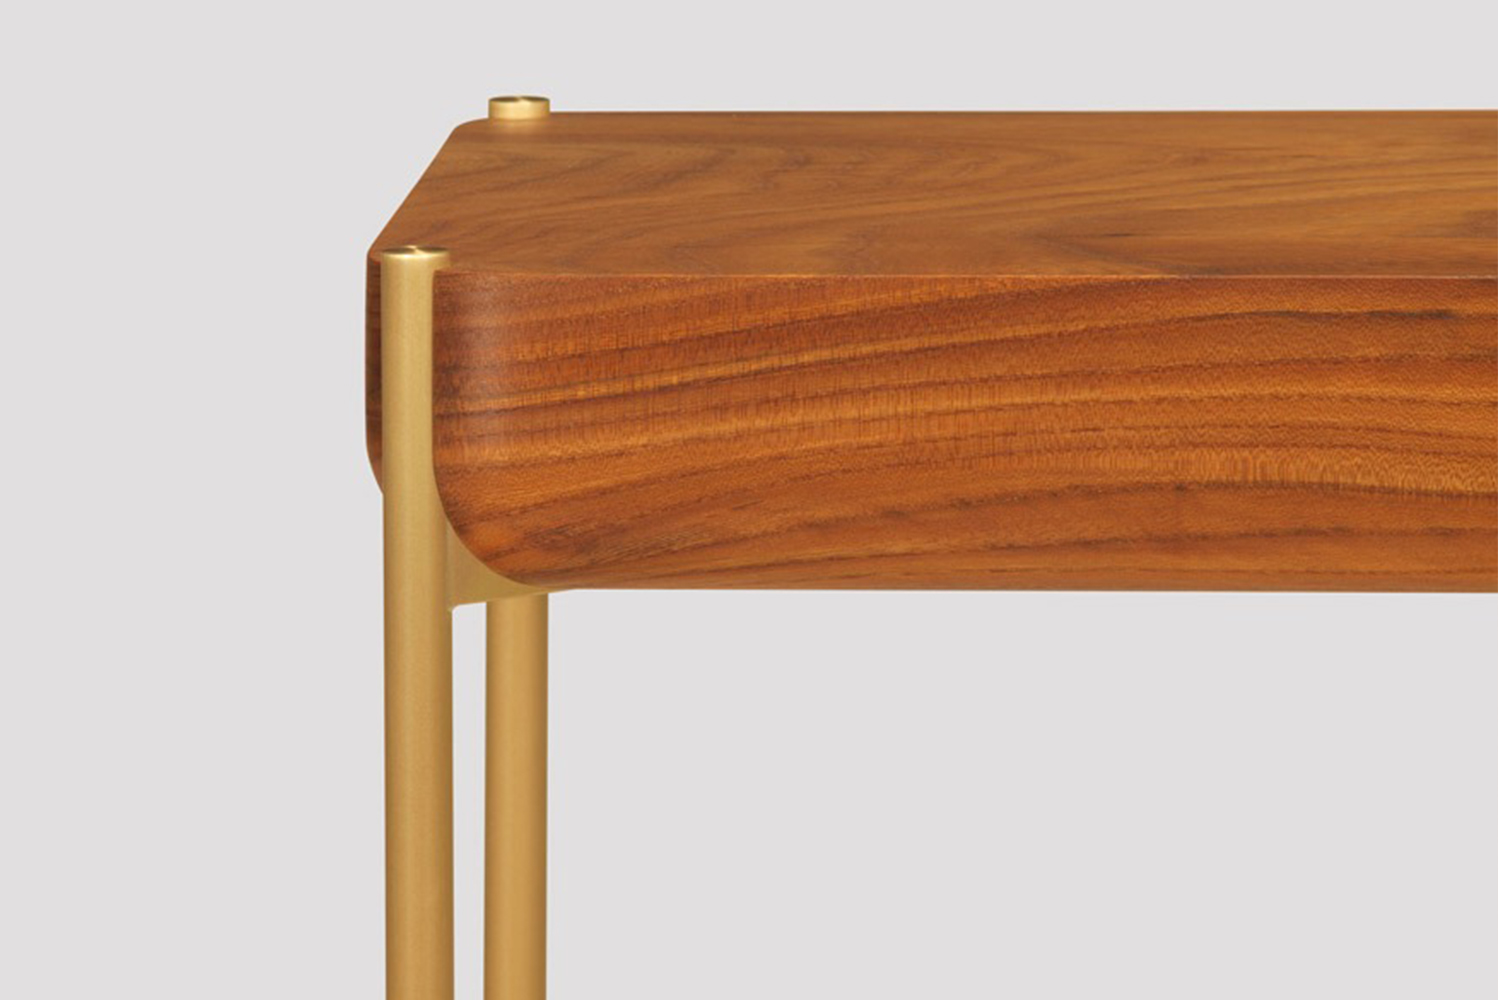 """A 2.5"""" thick timber top with reverse bullnose edge profile adds character while reinforcing the table's stability and sturdiness."""